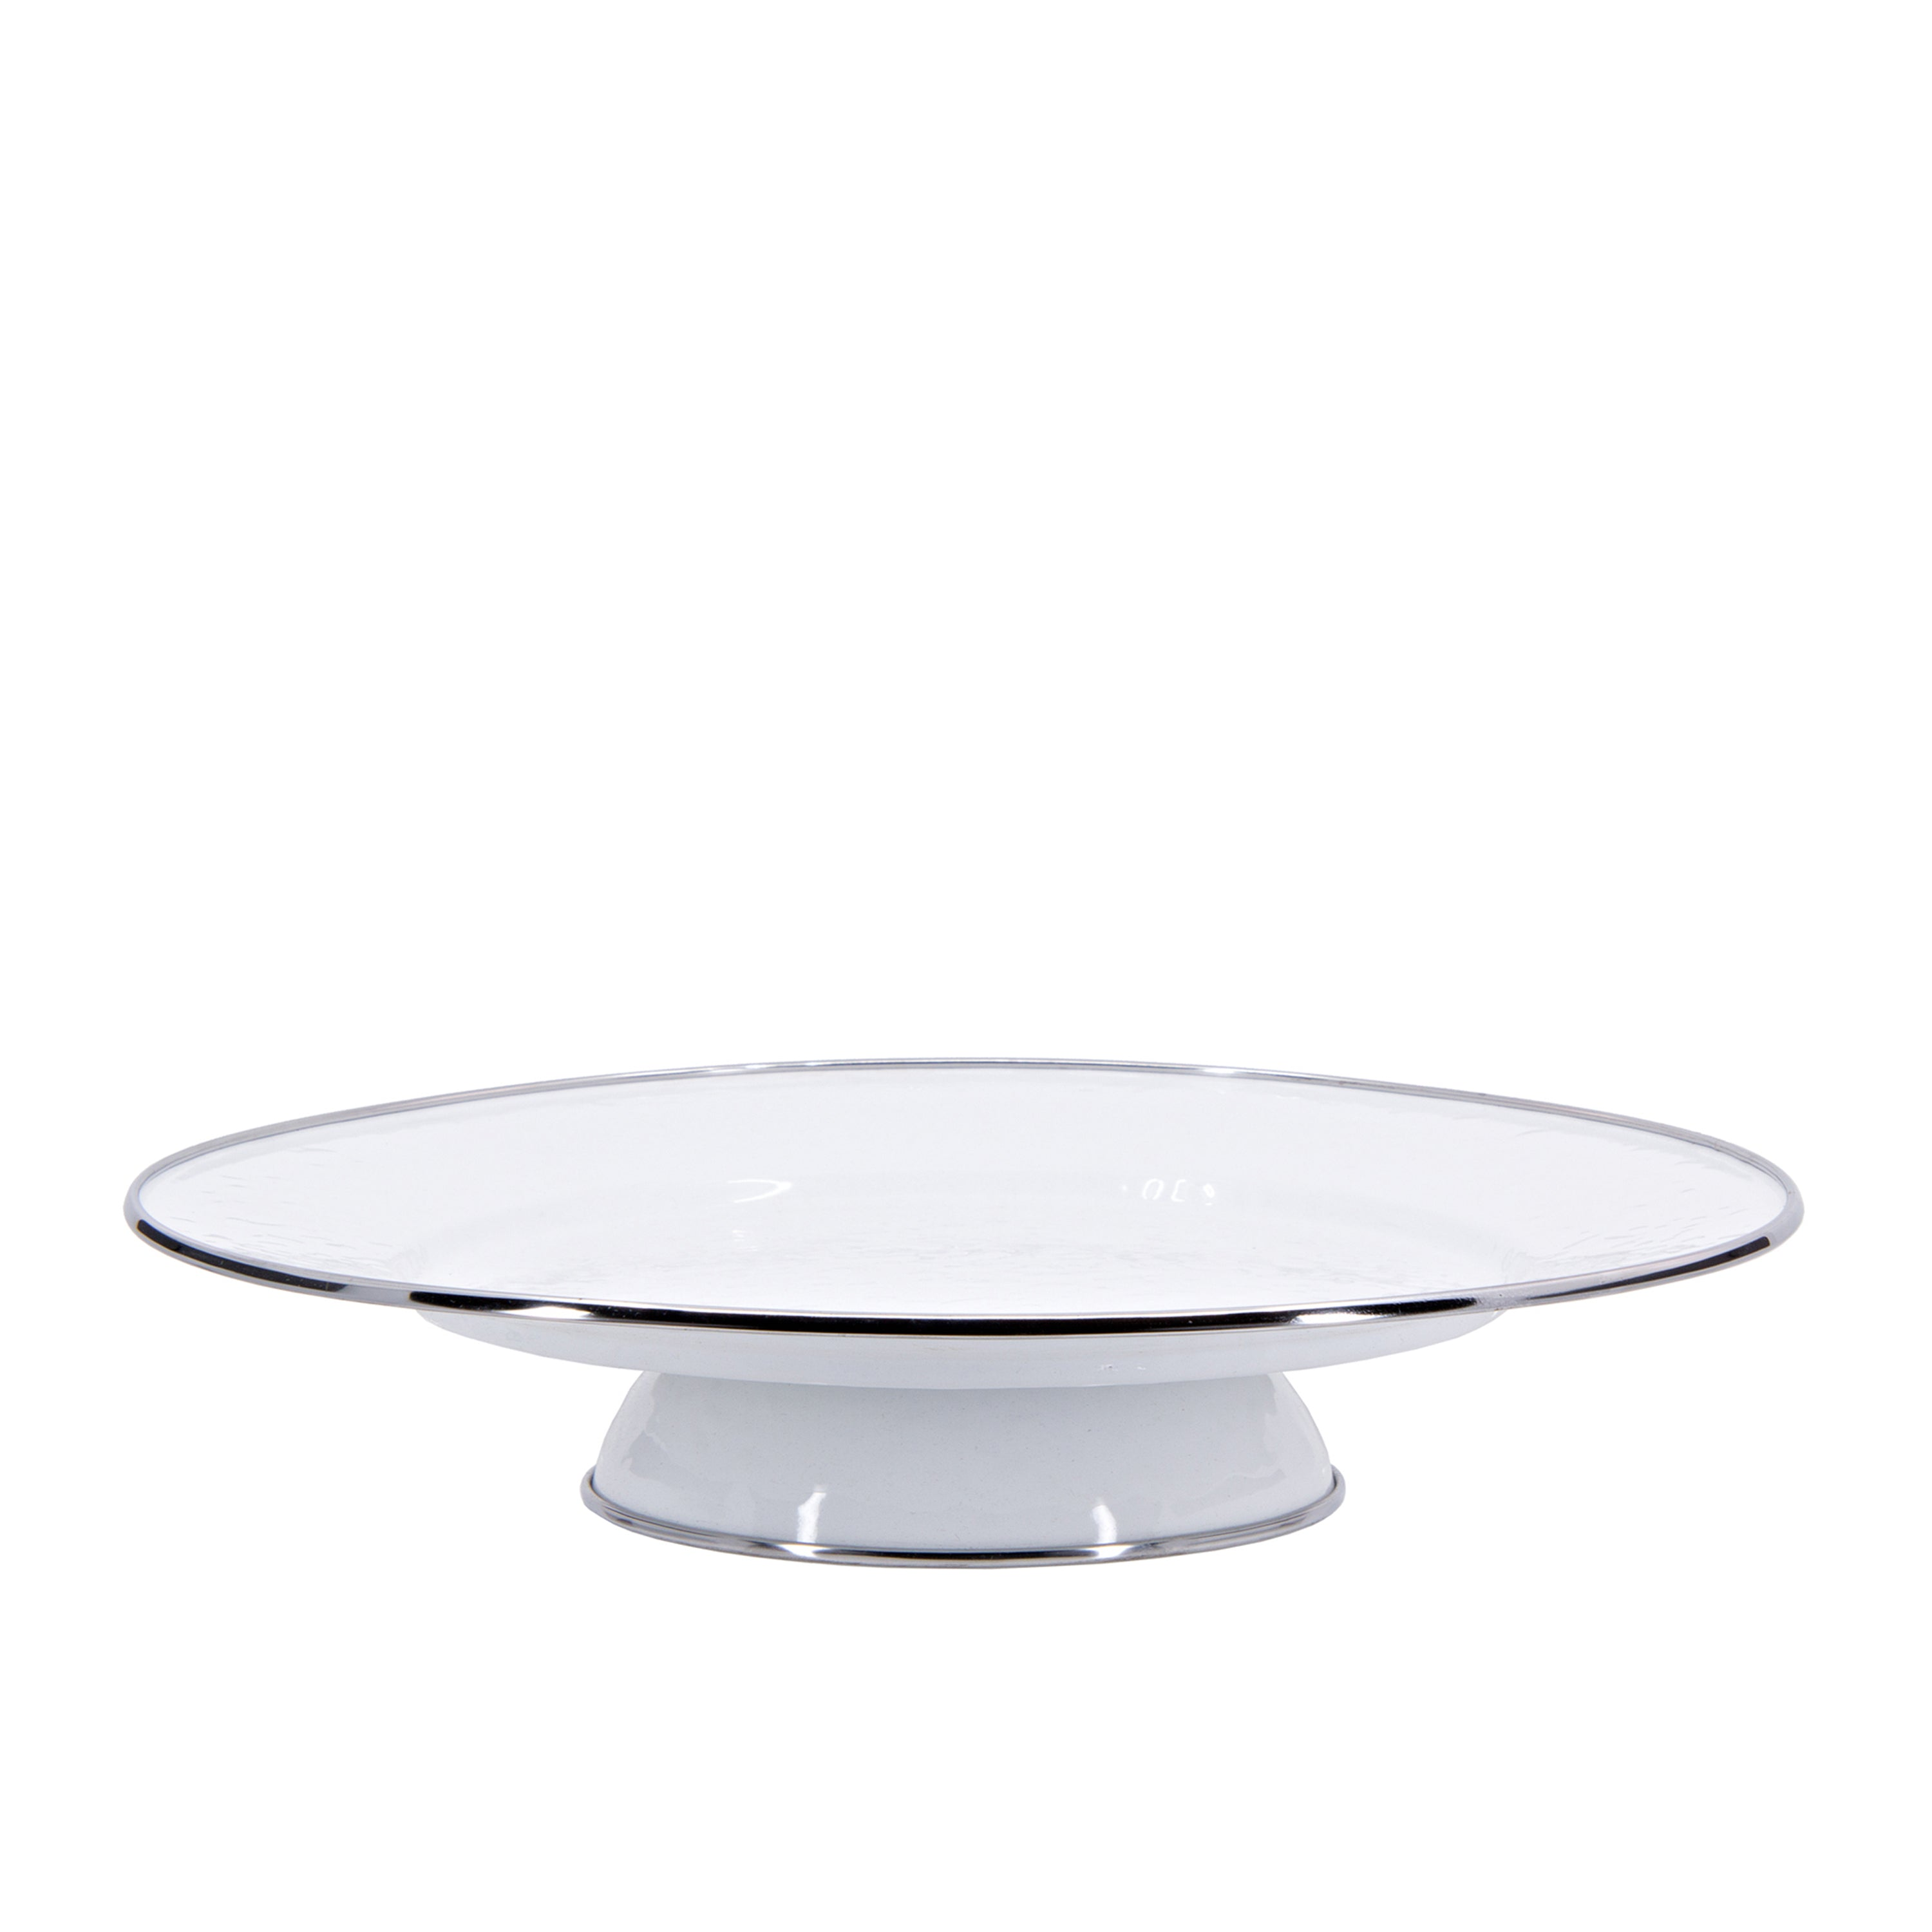 WW76 - Solid White Cake Plate Image 1